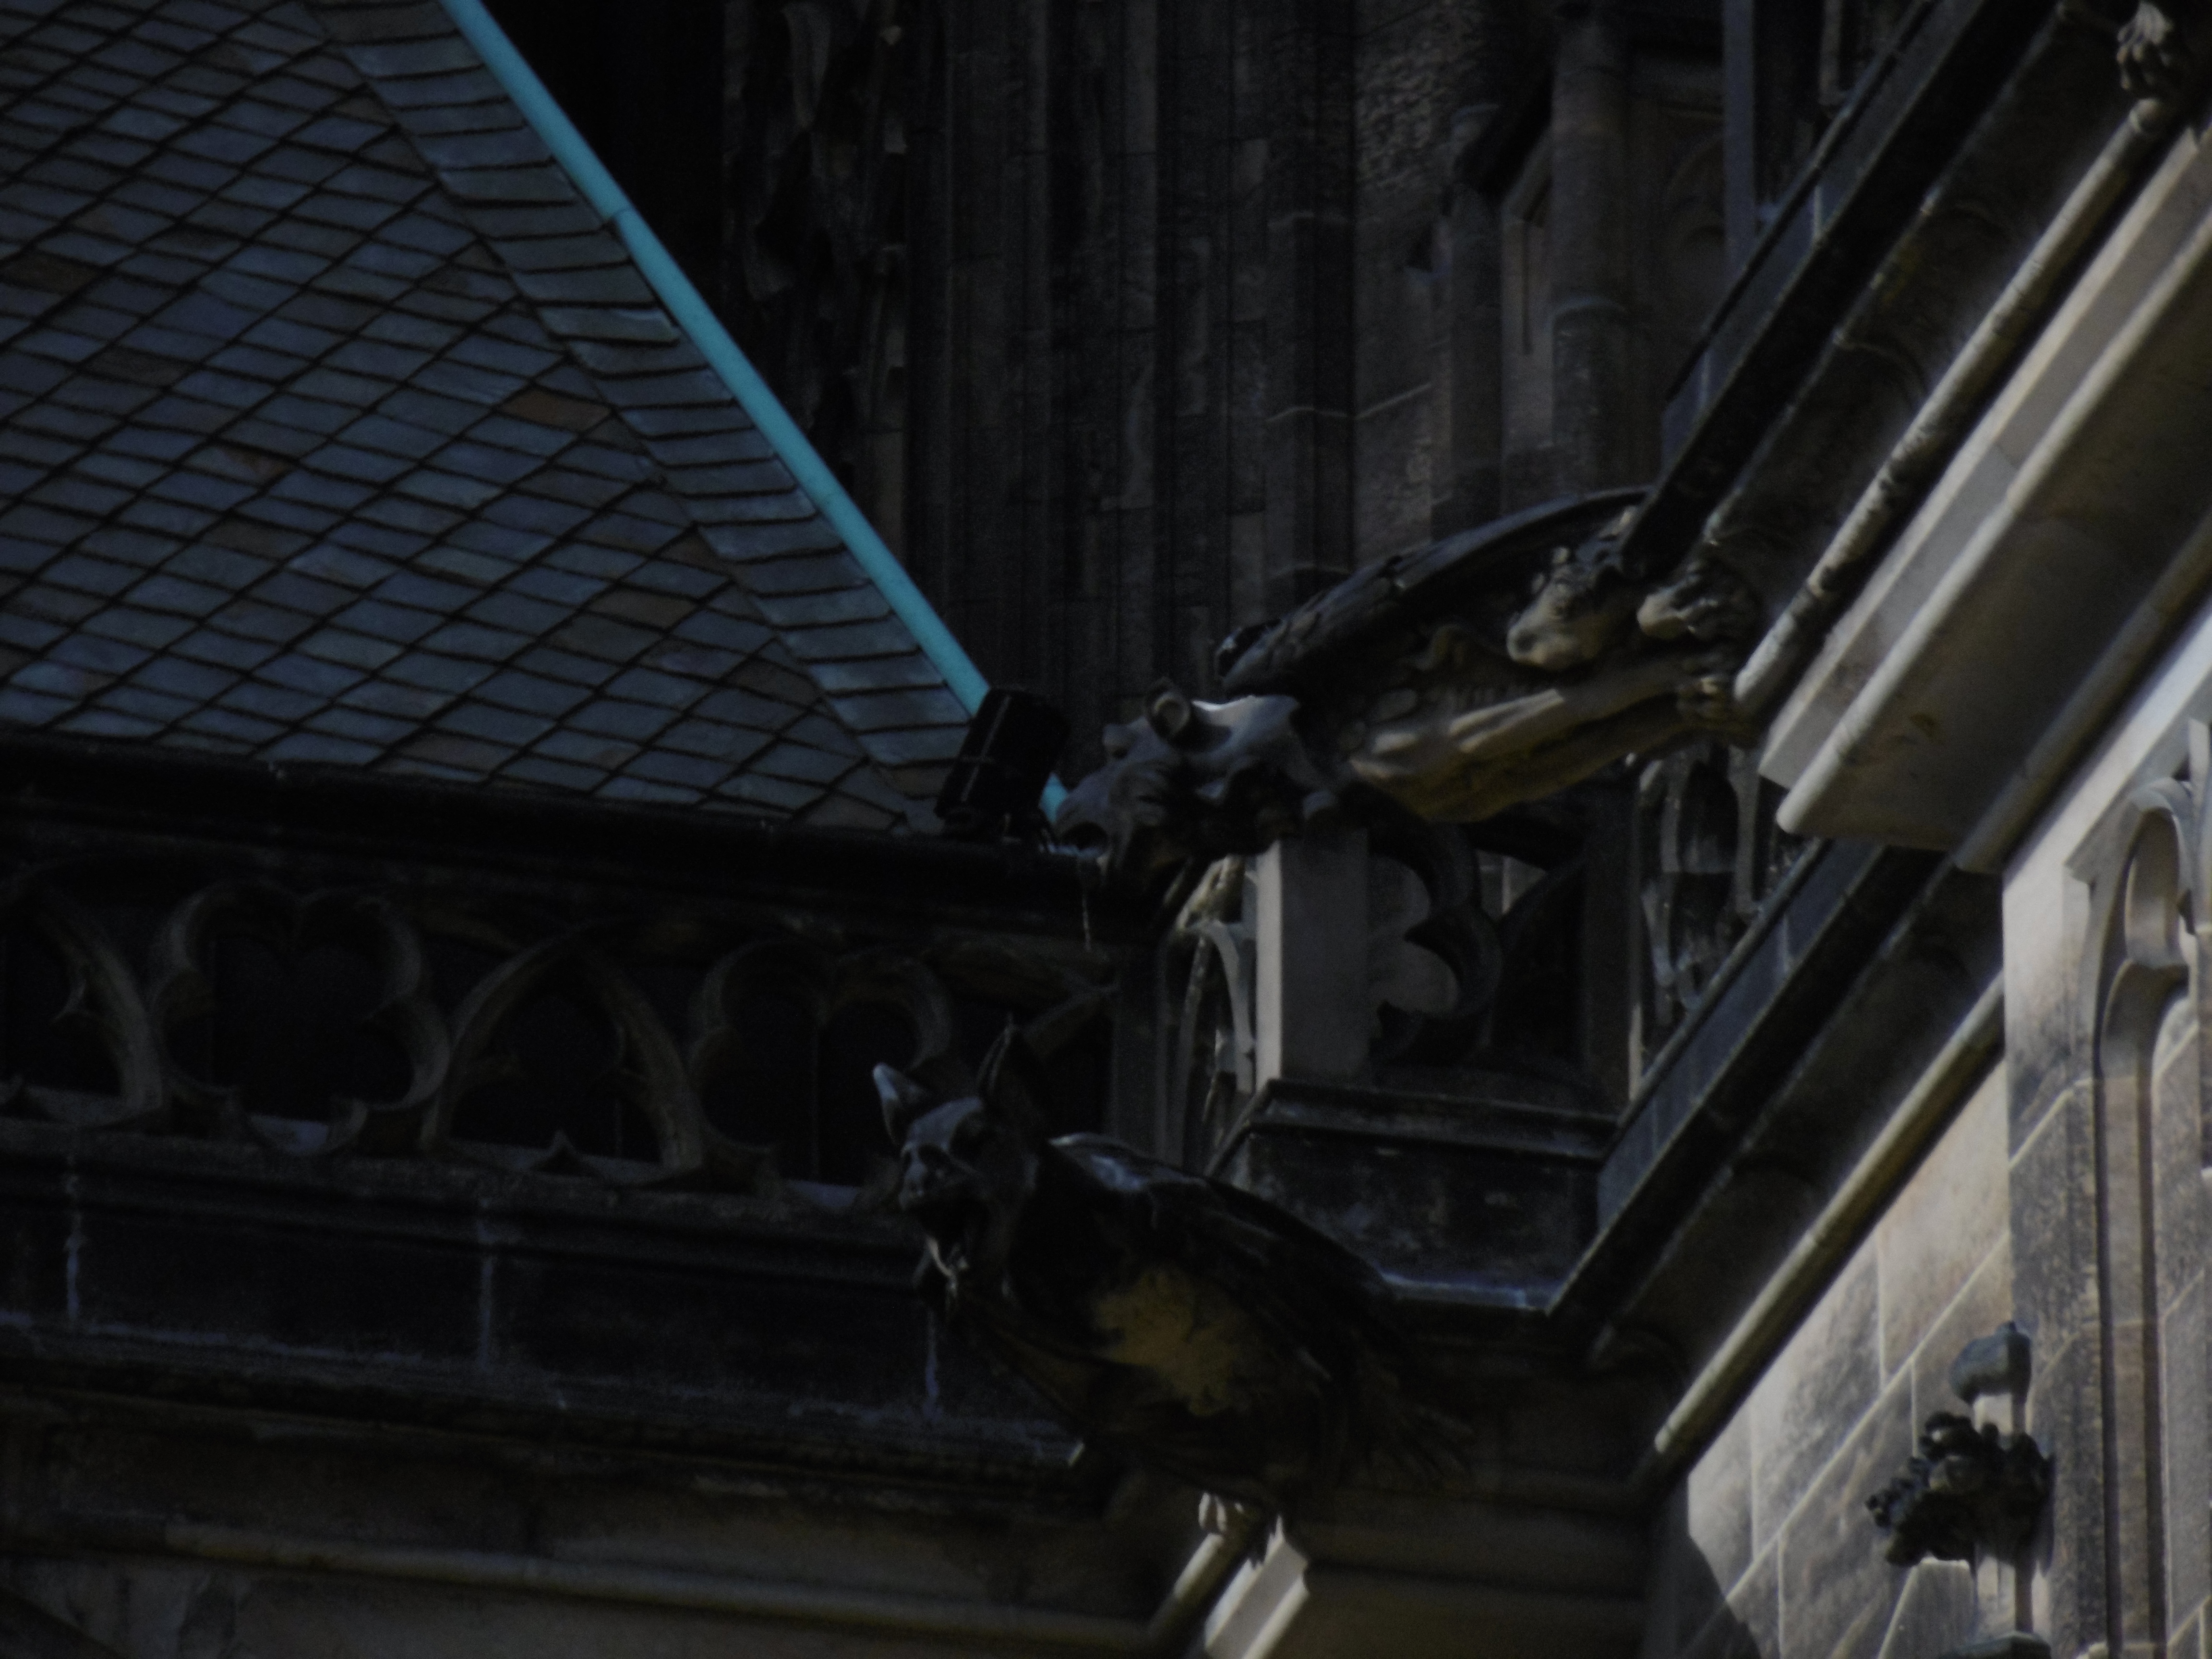 One of the gargoyles on the cathedral in Prague Castle.